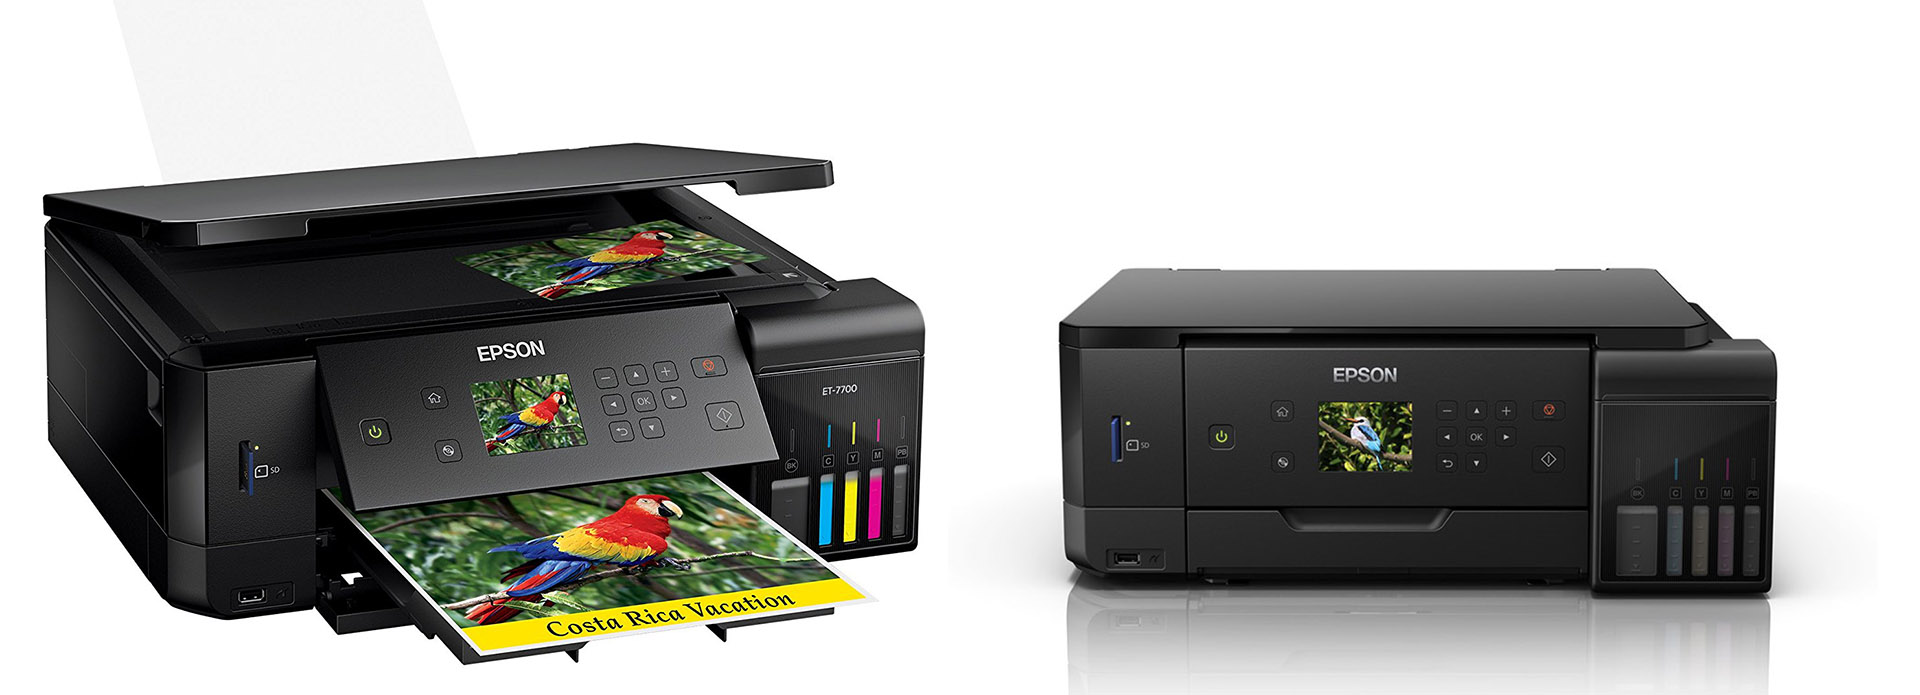 EPSON'S TOP TWO SUPERTANK PRINTERS OFFER BIG INK SAVINGS IN